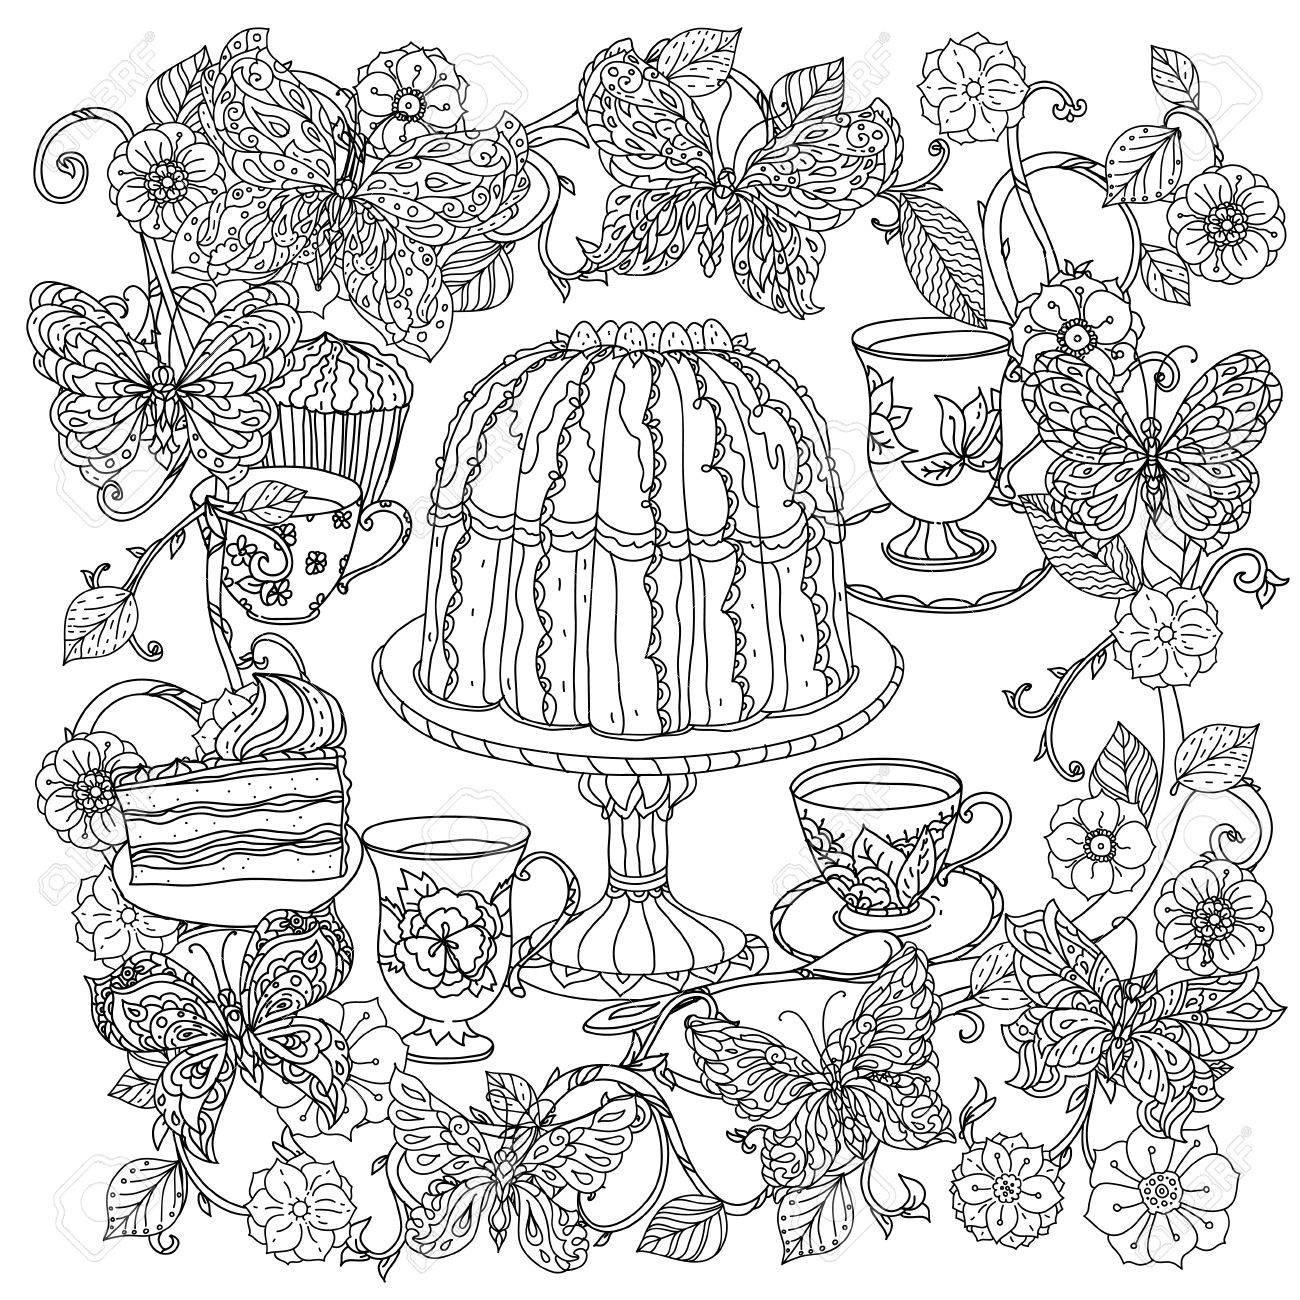 Anti stress coloring therapy - Uncoloured Sweets And Butterfly For Adult Coloring Book In Famous Zenart Art Therapy Antistress Style